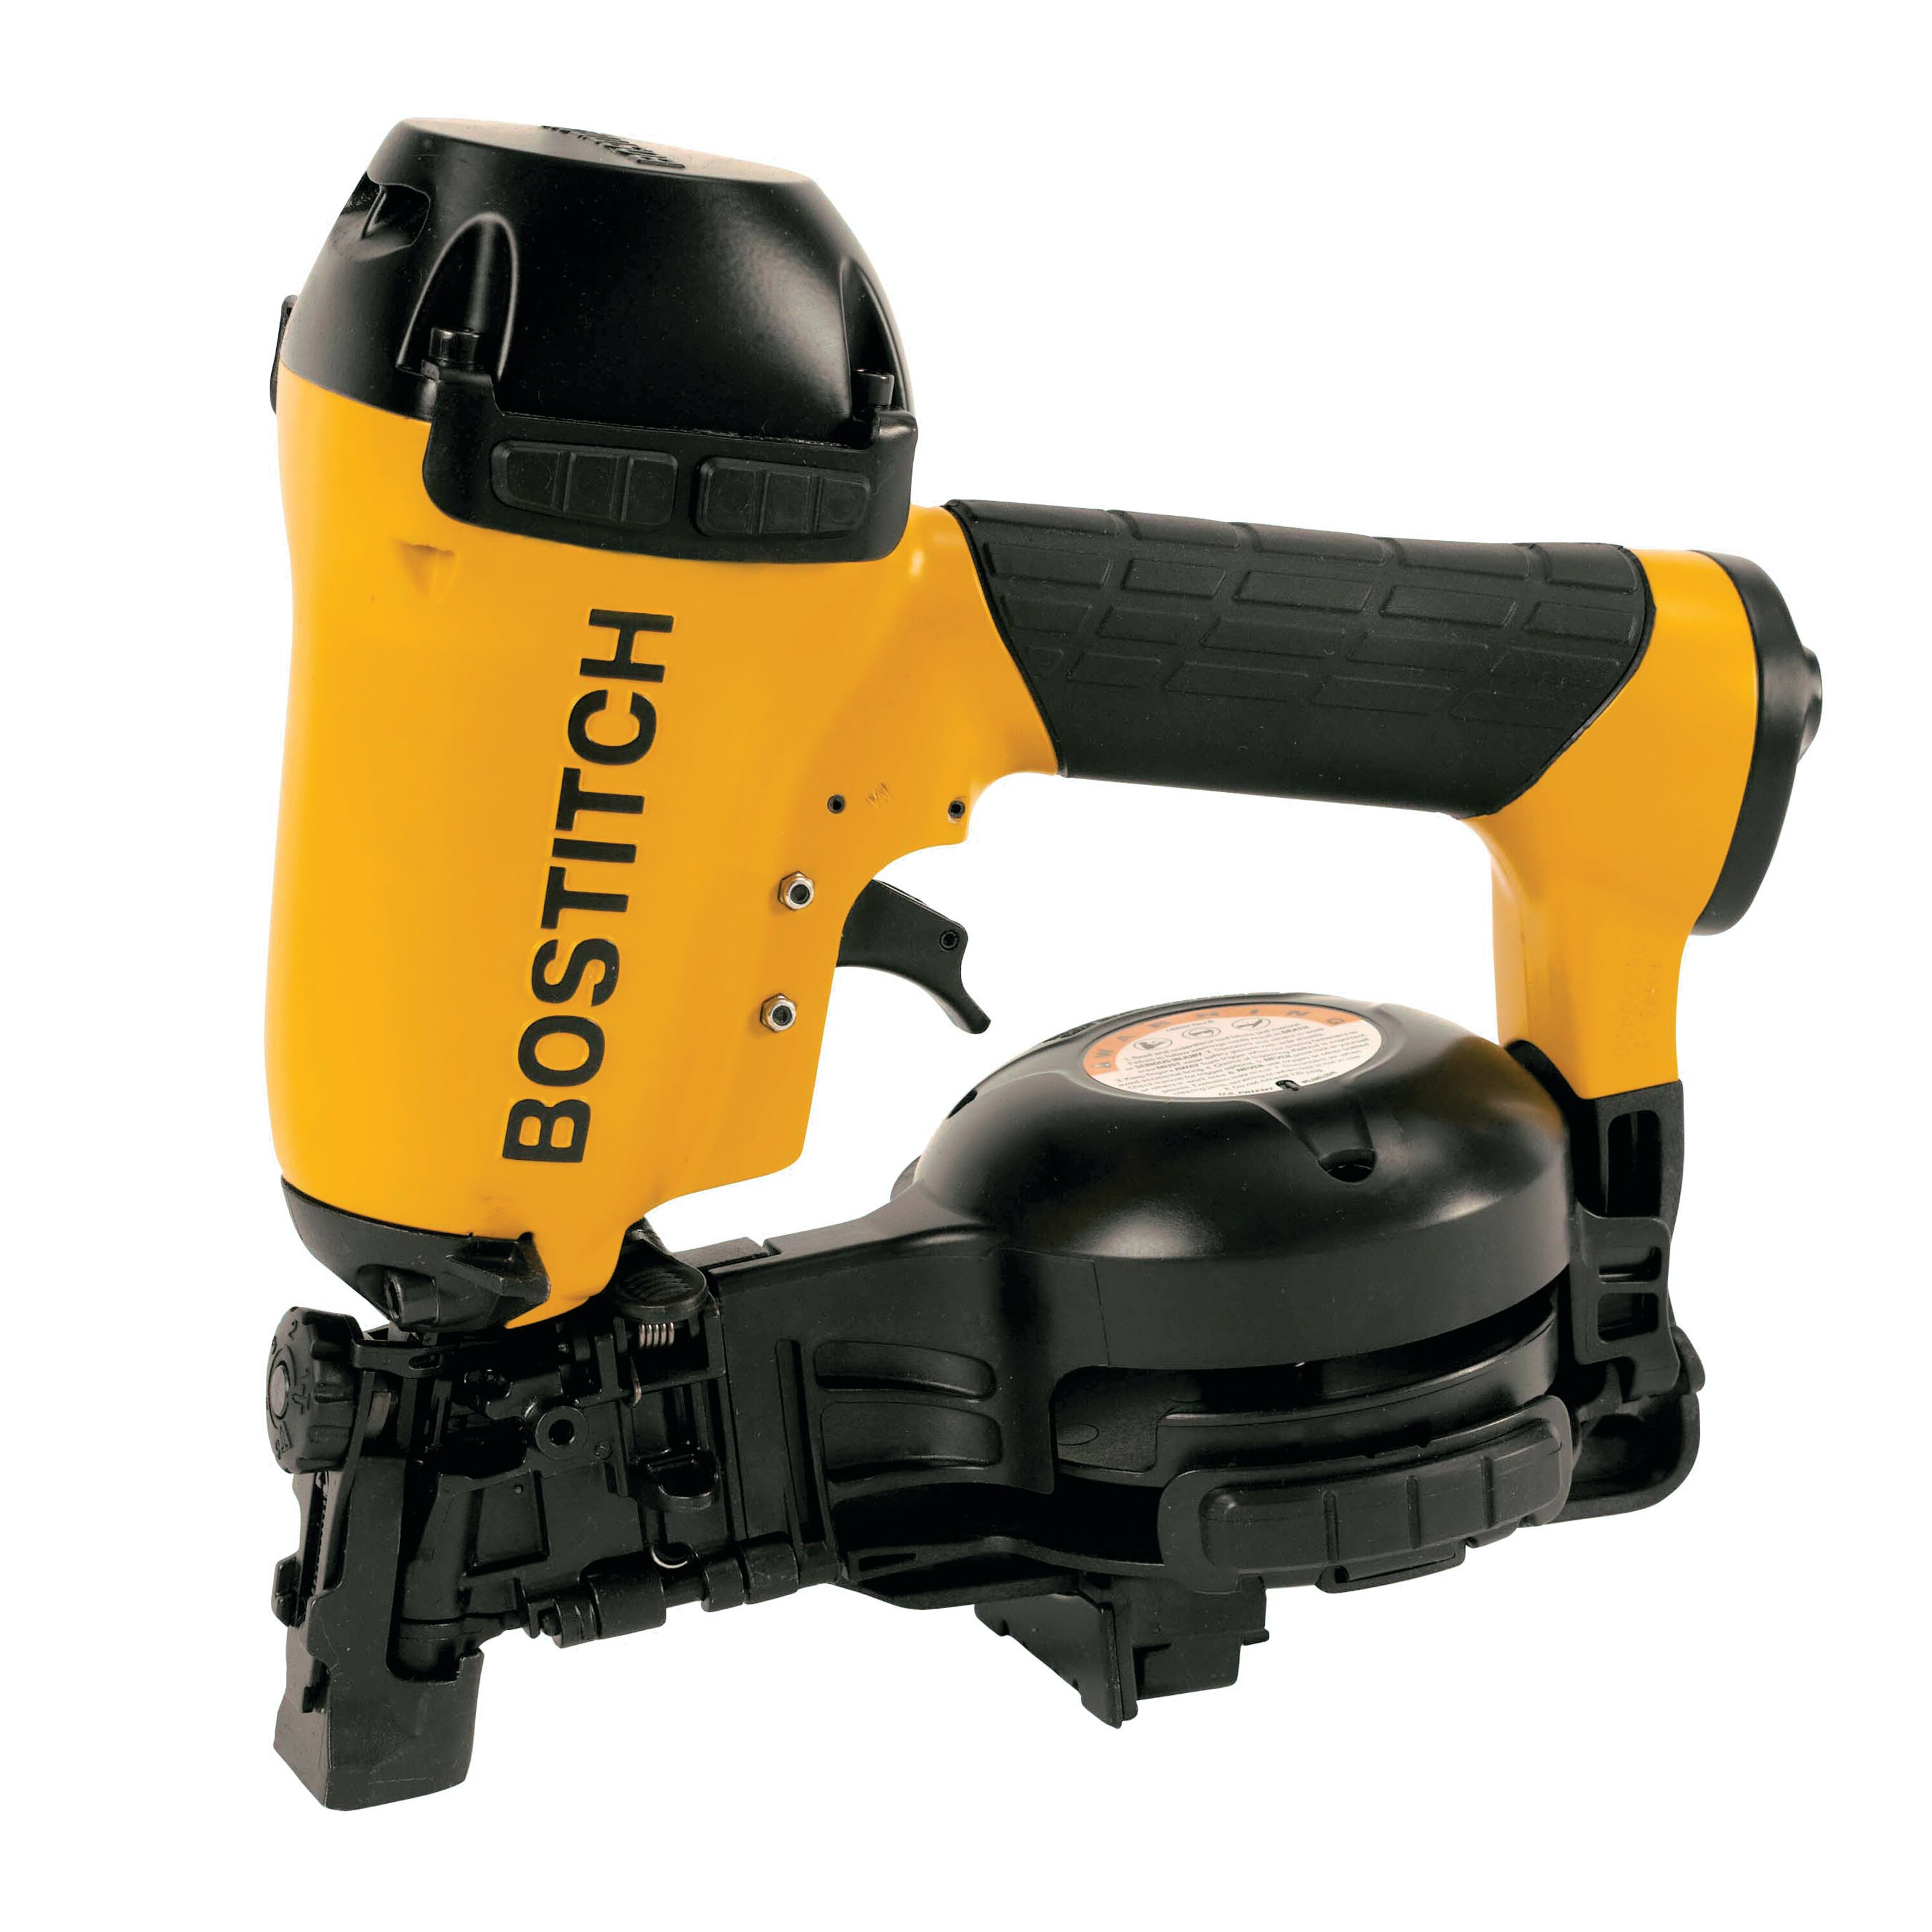 Bostitch - Coil Roofing Nailer - RN46-1